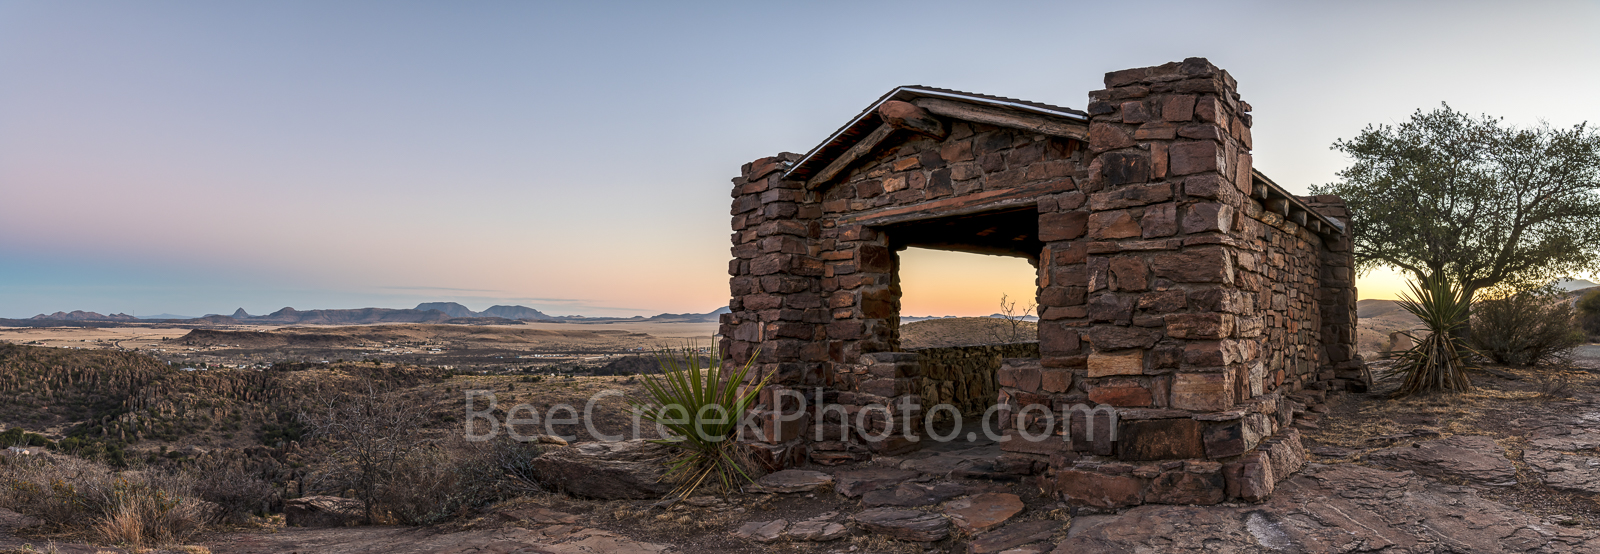 Davis Mountain Overlook, panorama, pano, sunset, colors, rock building, Texas landscape, mountain, Davis Mountain State Park, west texas, texan, usa, united states, america, Fort Davis, , photo